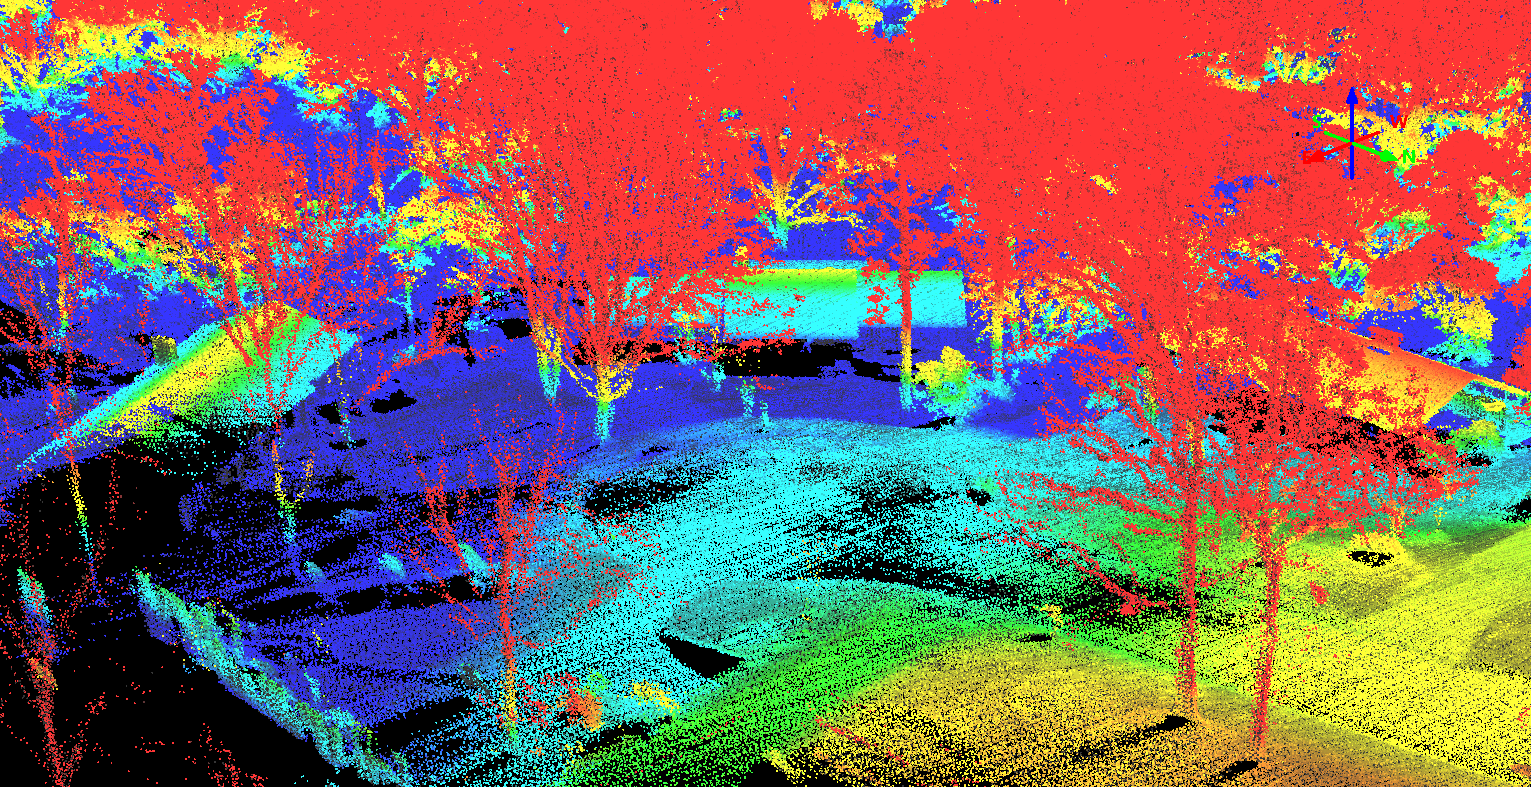 LIDAR point cloud captured by drone